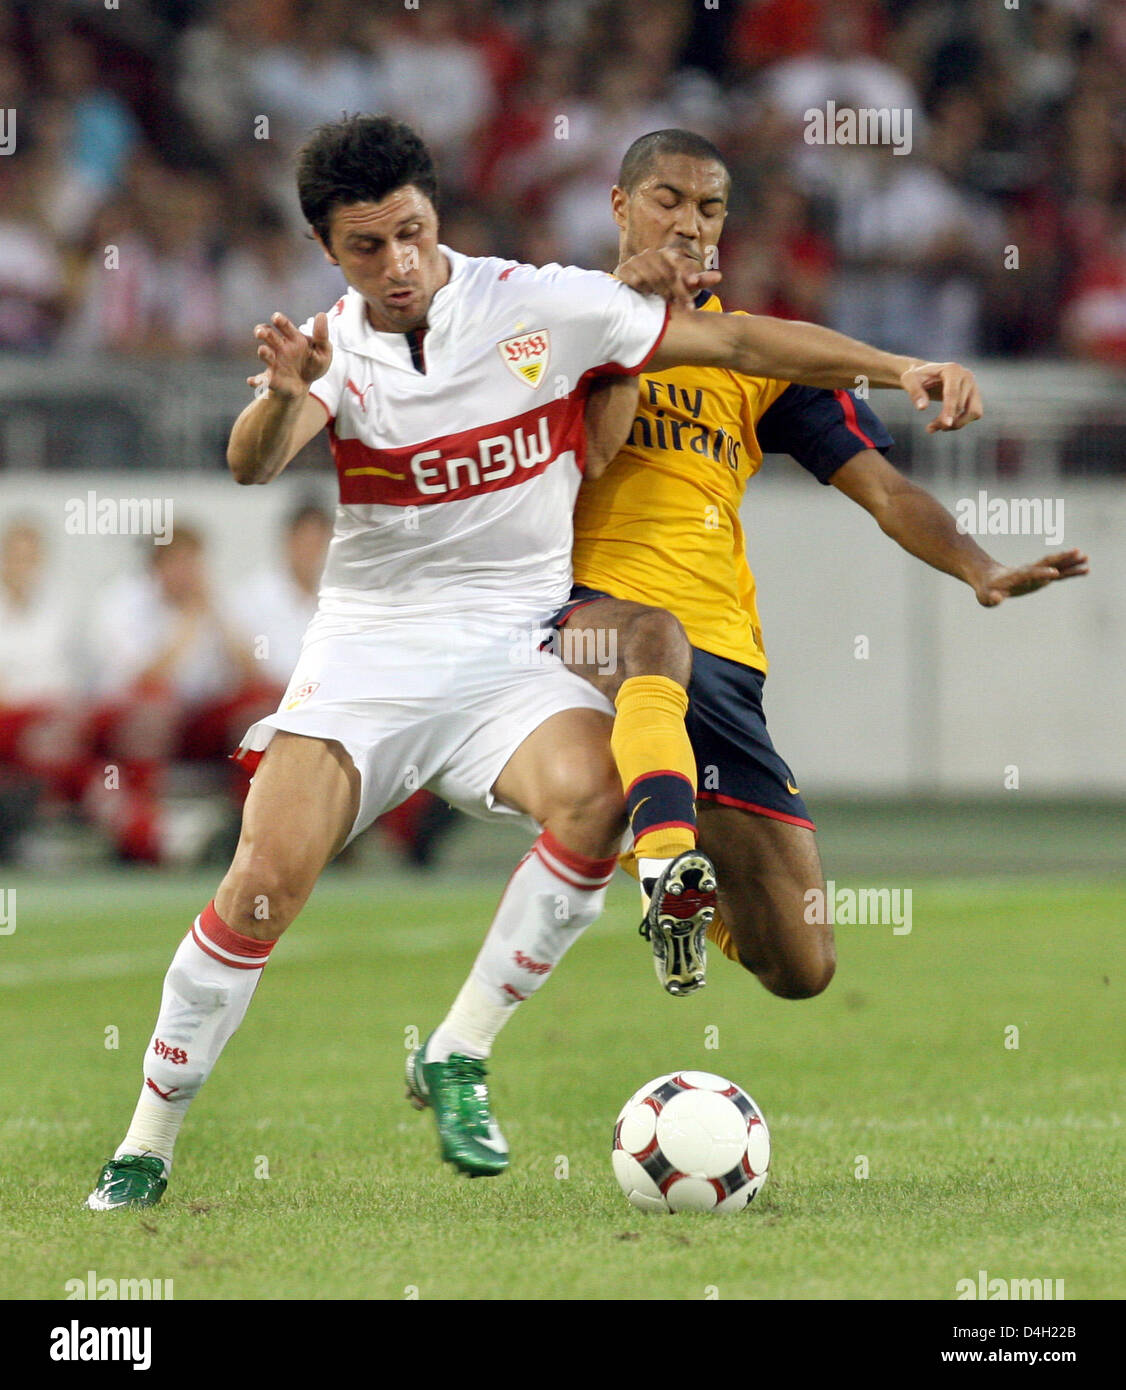 Stuttgart's Ciprian Marica (L) and Arsenal's Gael Clichy (R) vie for the ball during the soccer test match - Stock Image